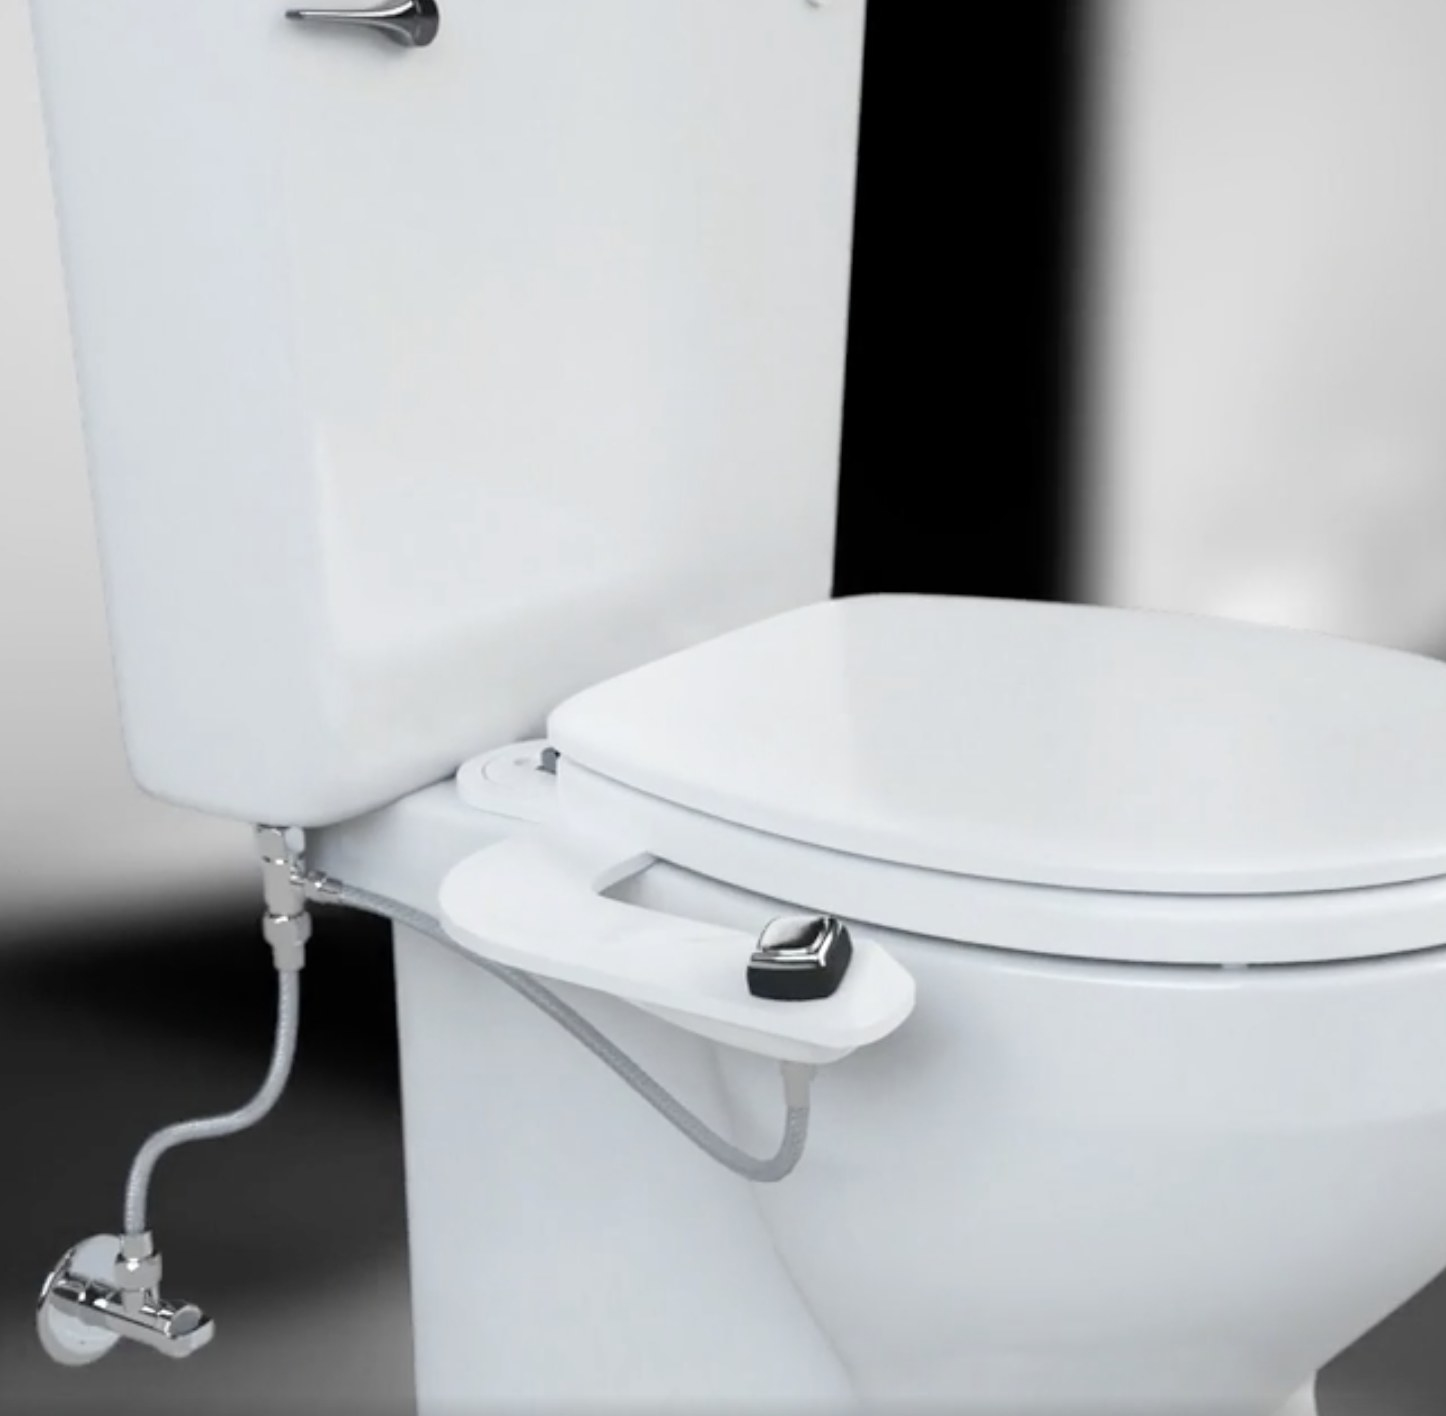 A bidet on a toilet